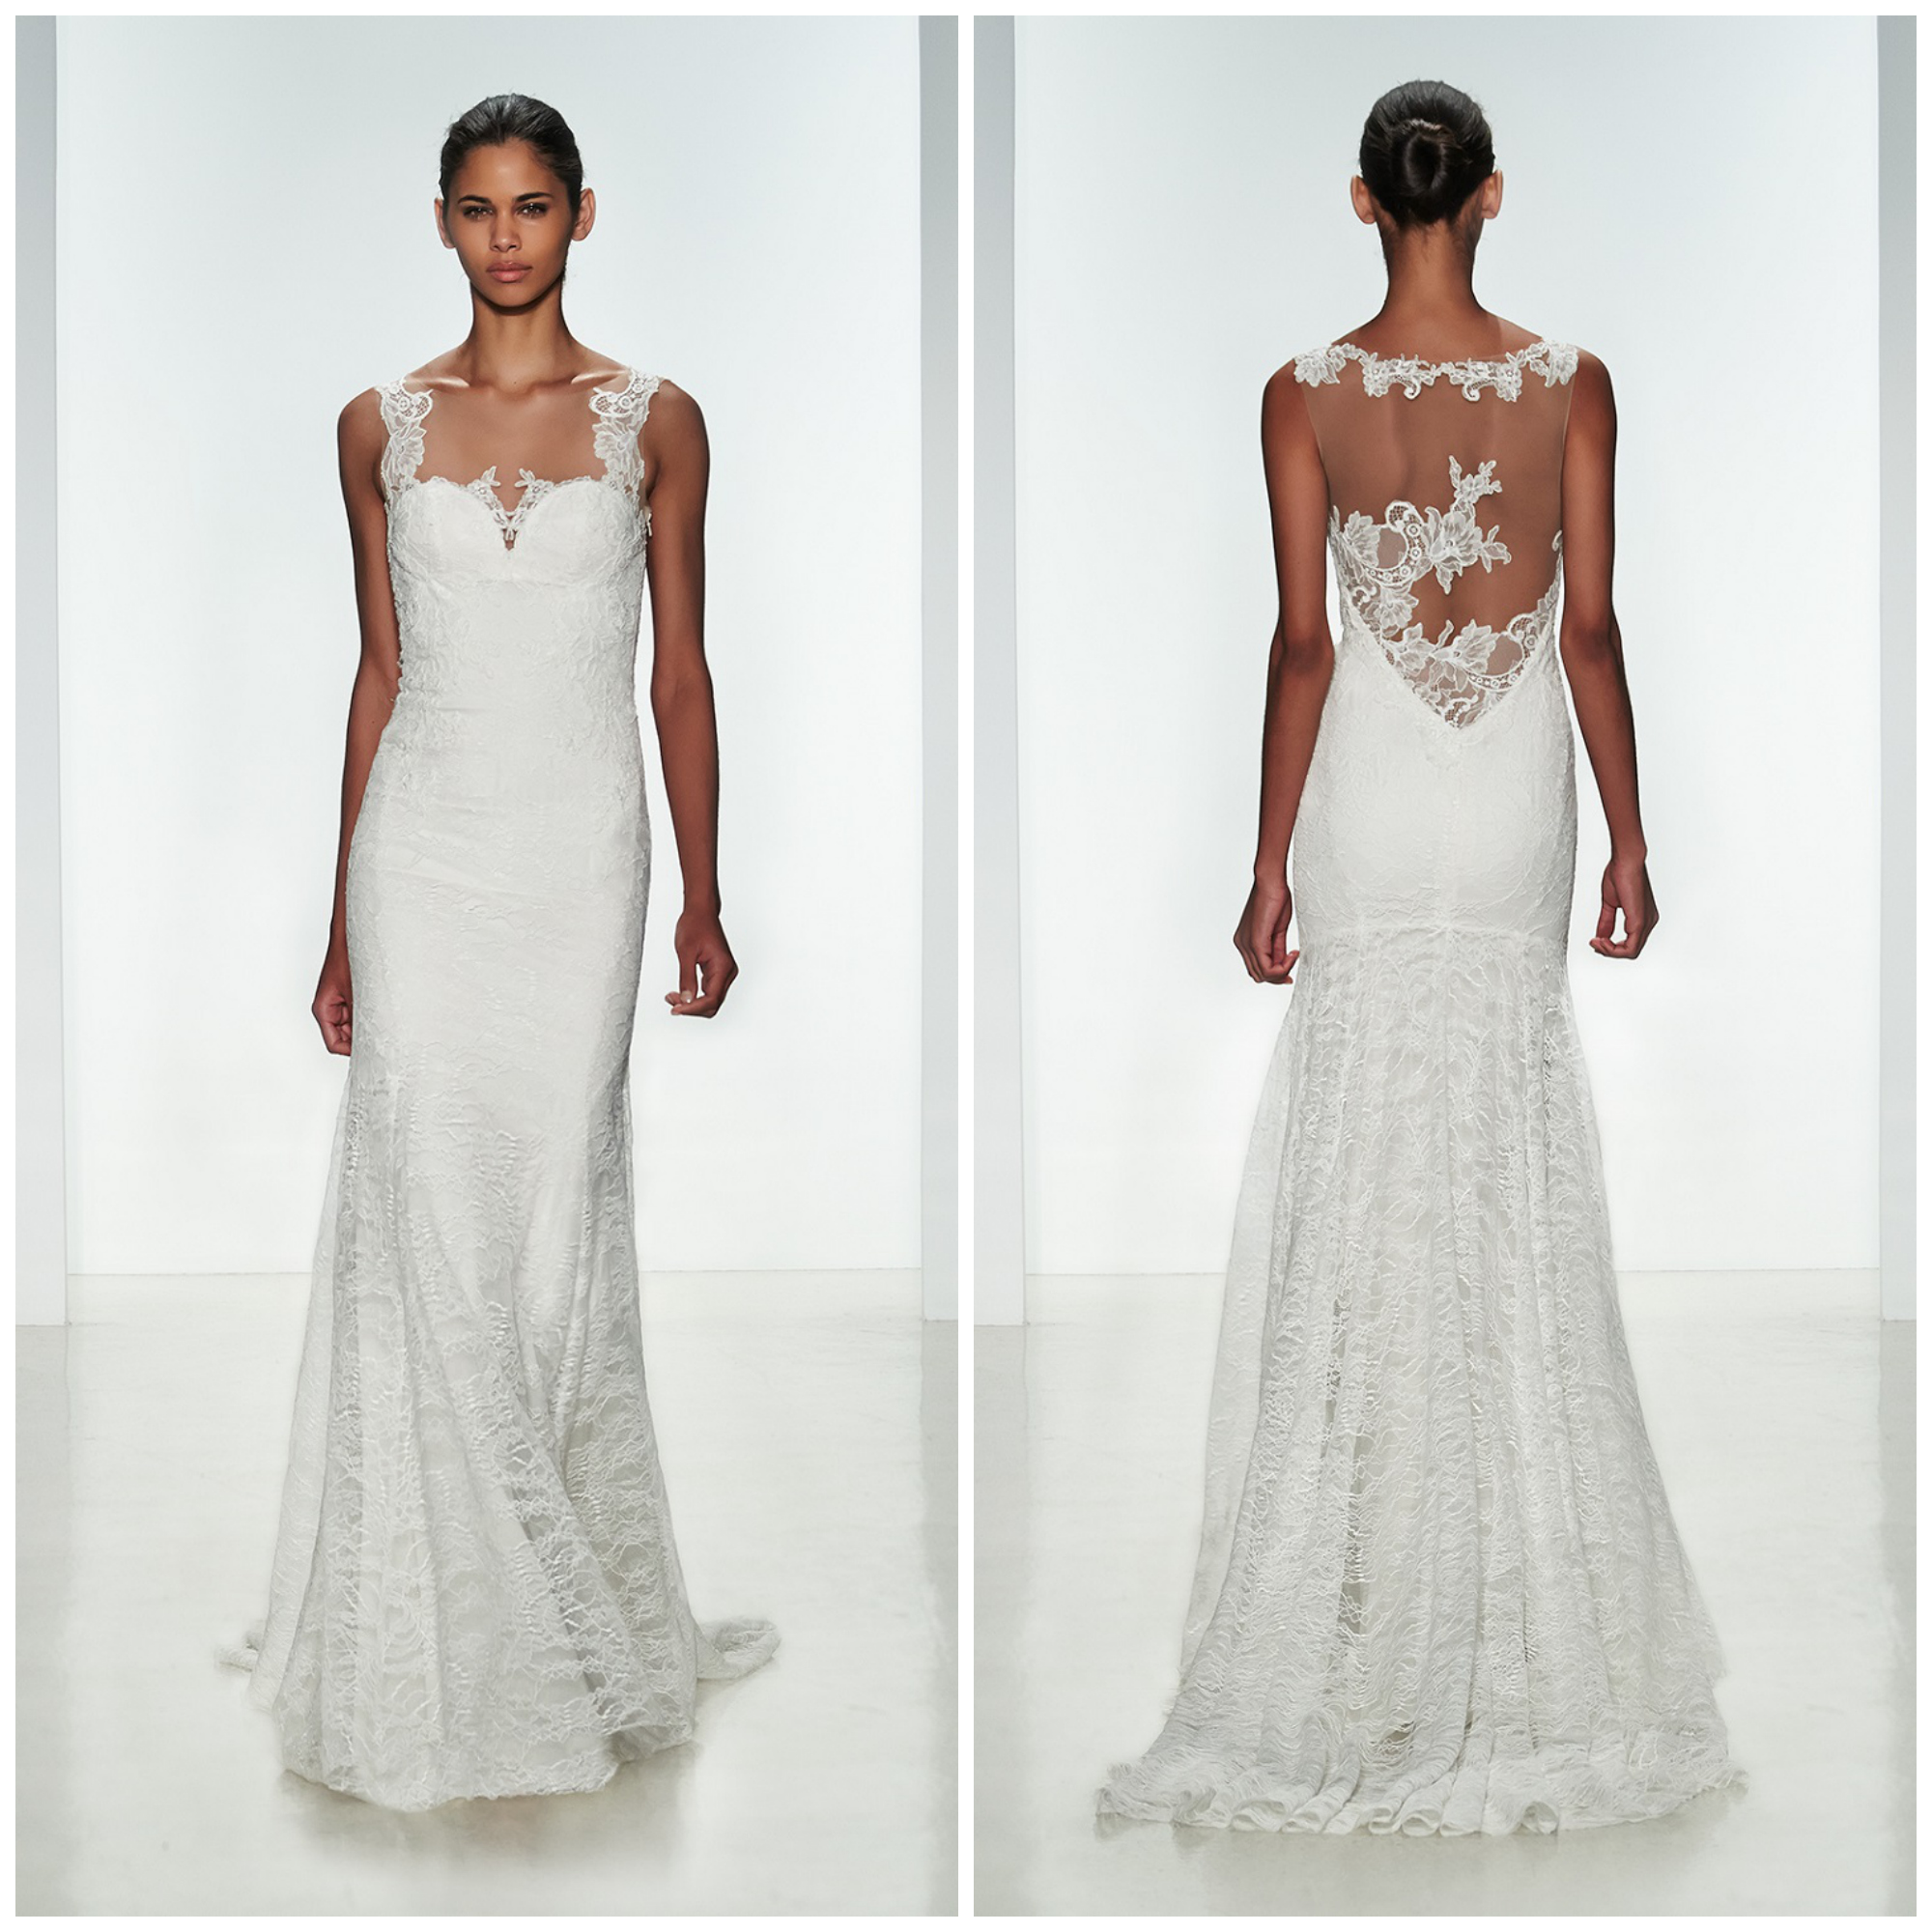 25 Of 2015u0027s Best Wedding Dresses To Fulfill The Fantasies Of Every Bride  To Be